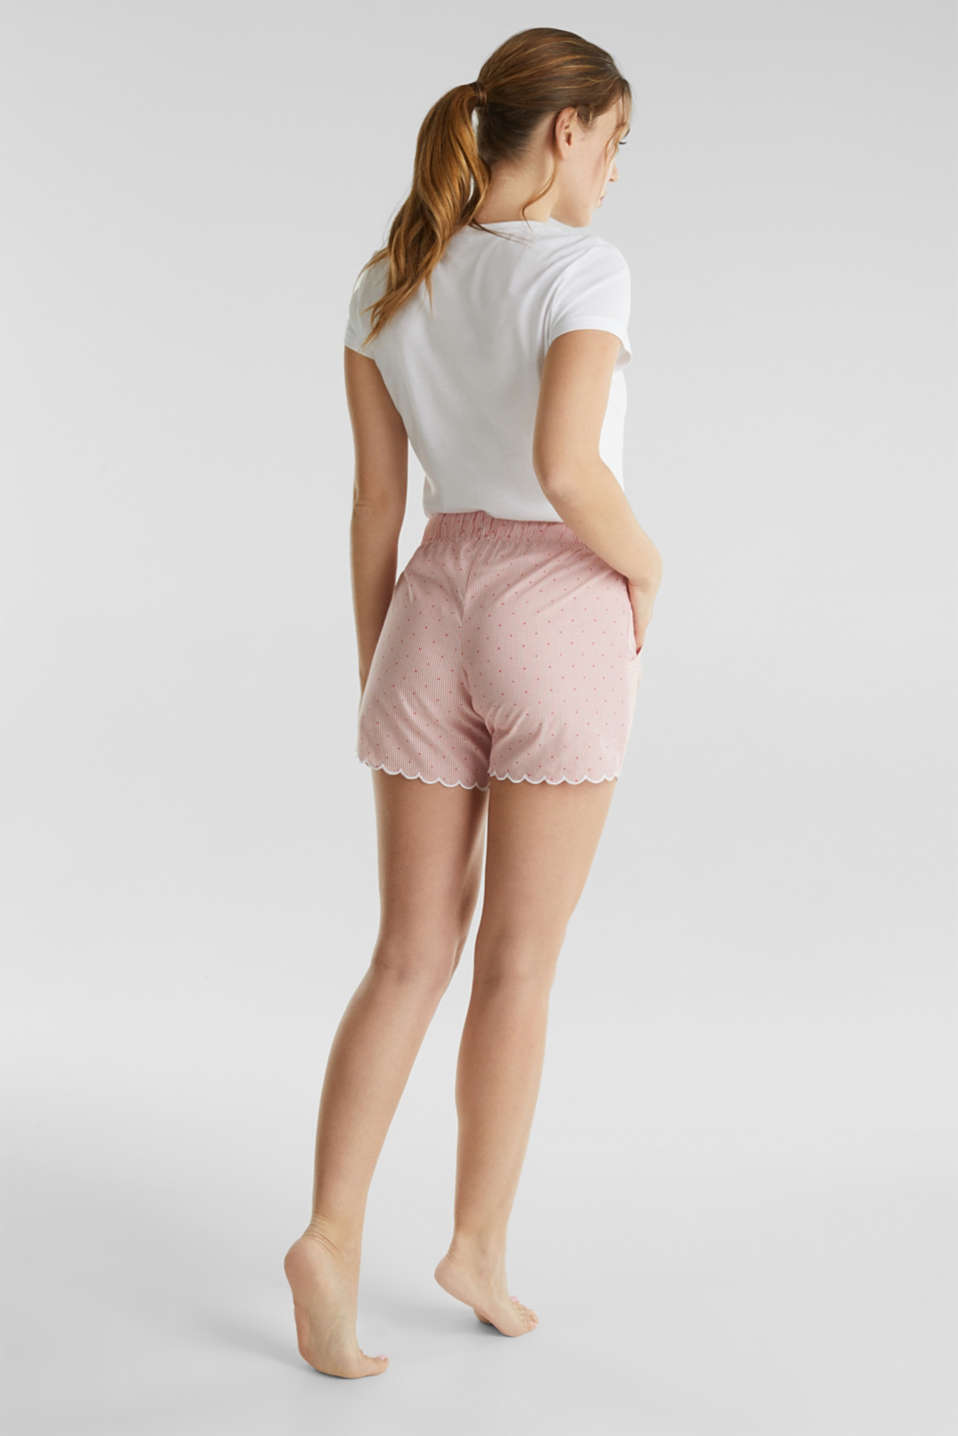 Woven shorts with a jacquard pattern, 100% cotton, CORAL RED, detail image number 2